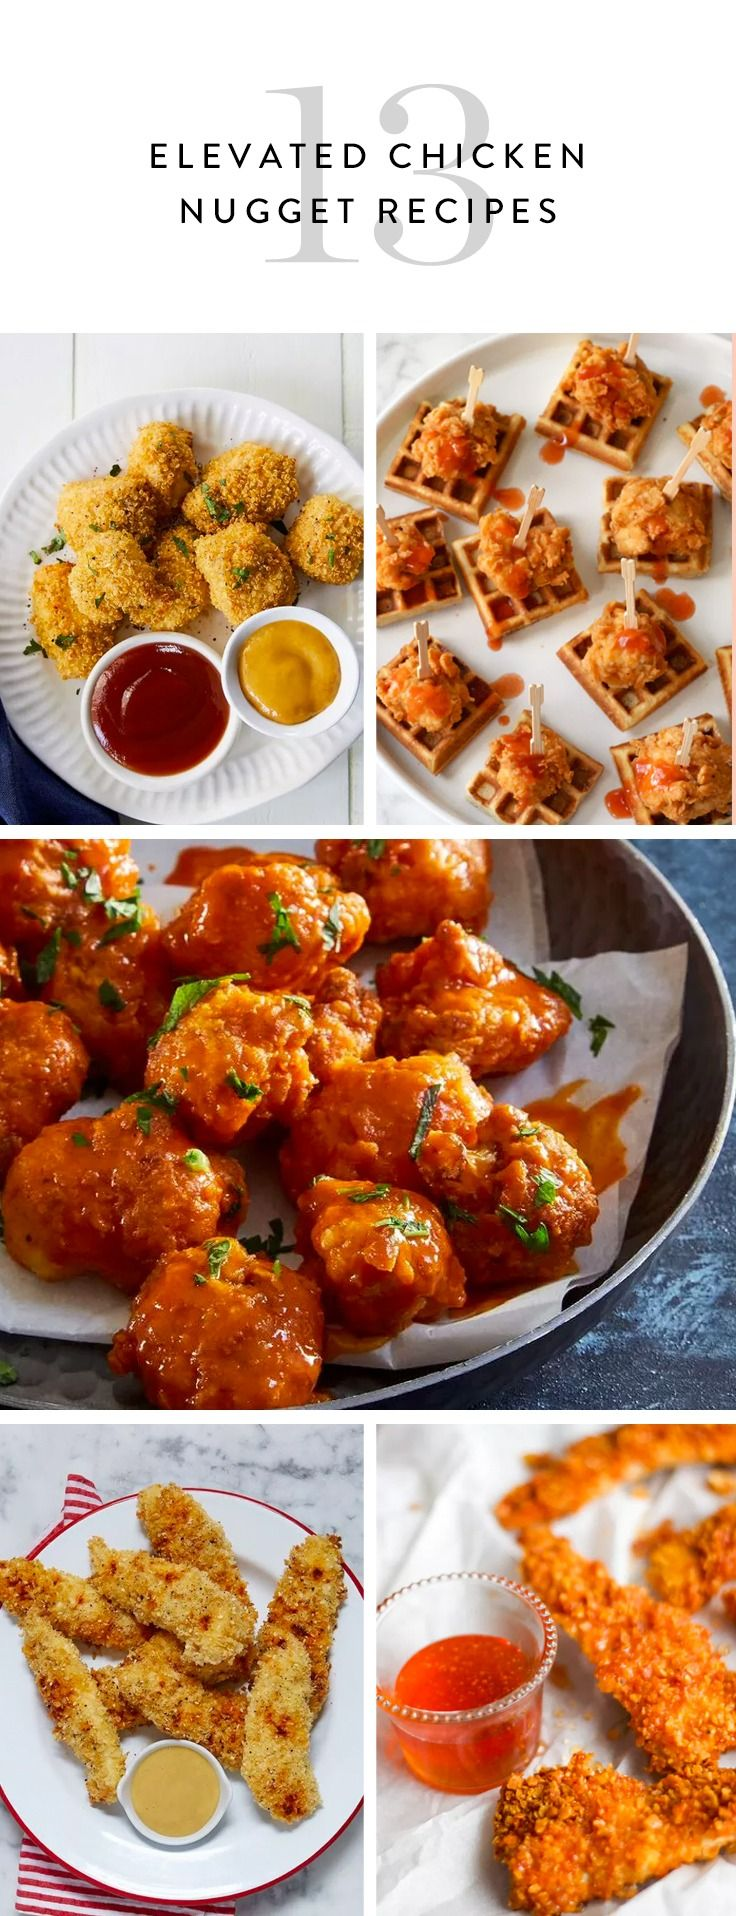 Presenting 13 totally fancy chicken nugget recipes to make for dinner tonight.